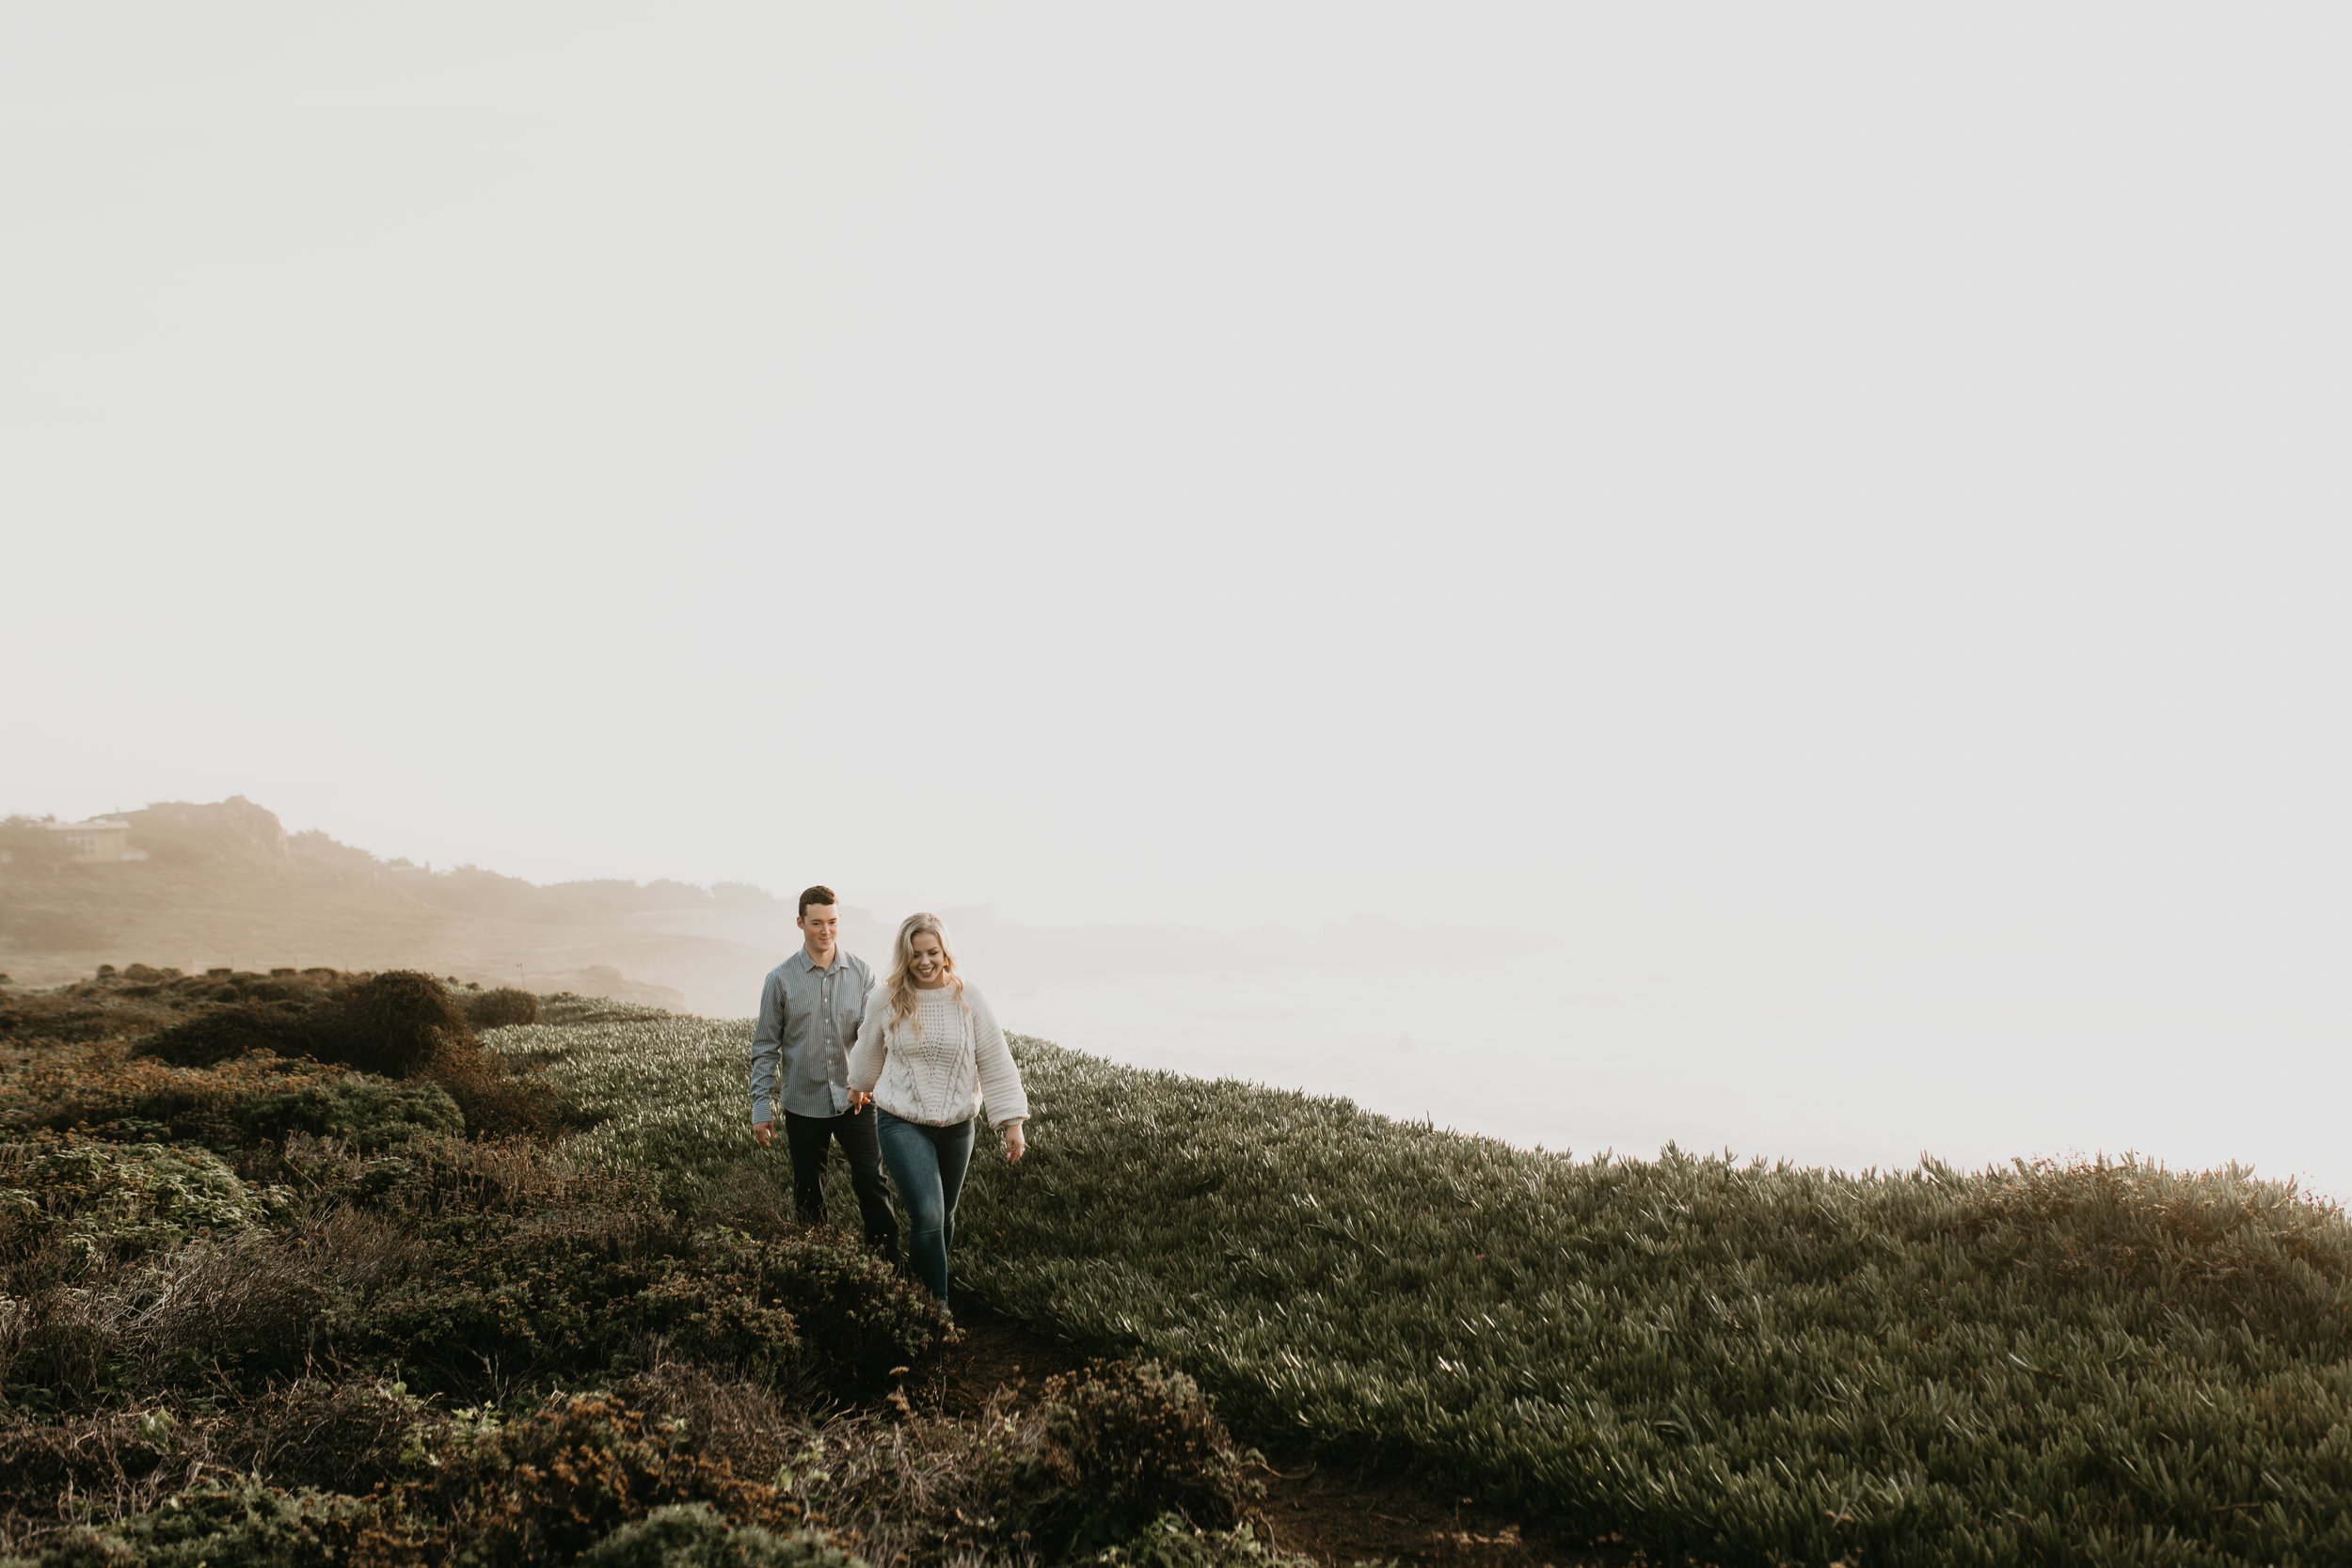 Nicole-Daacke-Photography-big-sur-garrapatta-state-park-adventurous-engagement-session-bixy-bridge-elopement-big-sur-wedding-photographer-monterey-elopement-photographer-california-golden-sunset-coast-photos-15.jpg